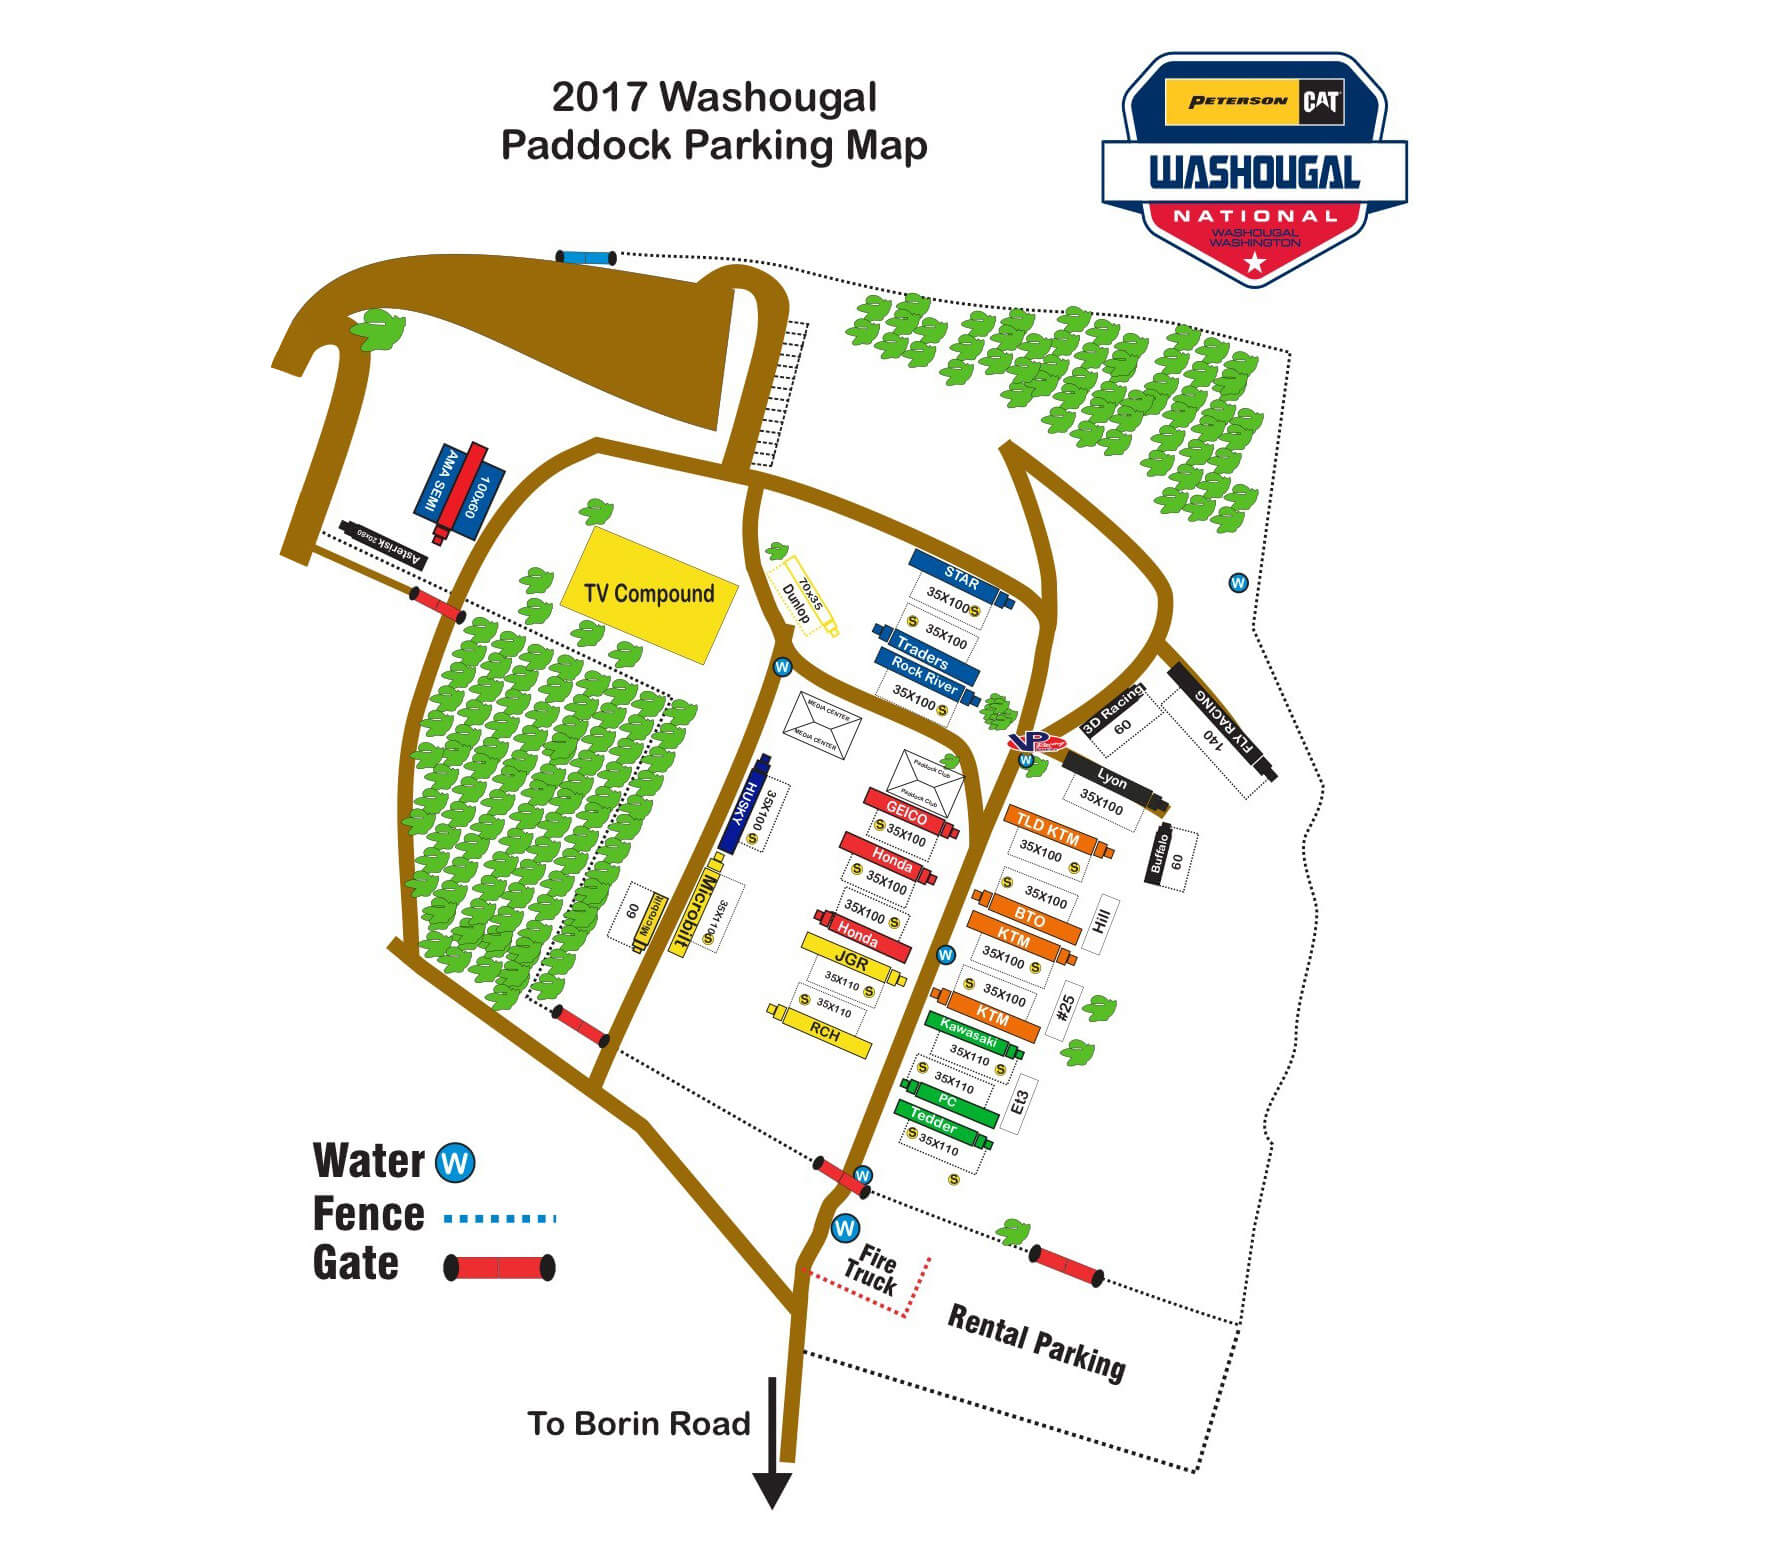 Paddock Parking -Click image to enlarge.